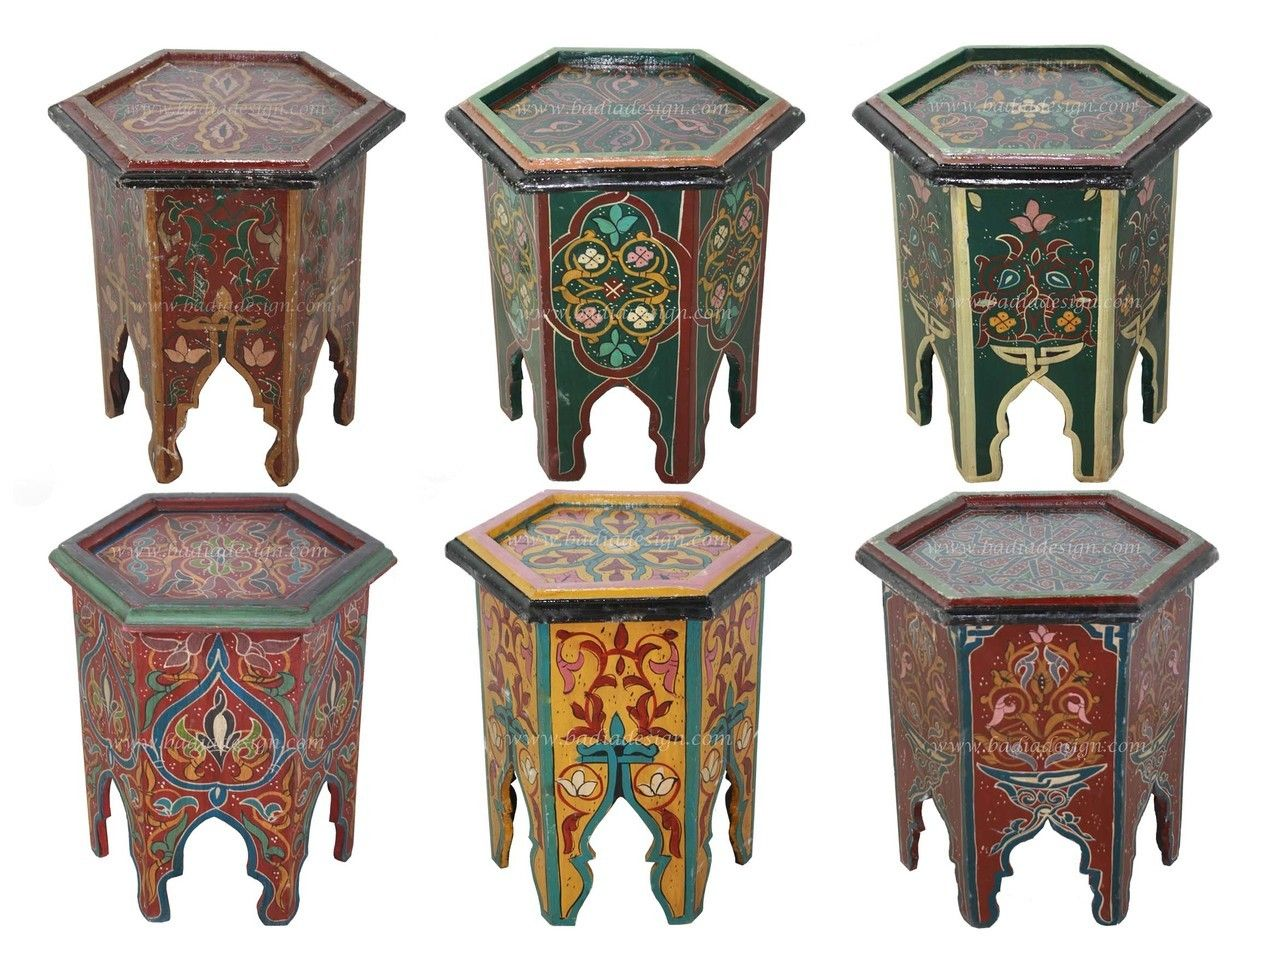 Mediterranean living room los angeles by badia design inc - Badia Design Inc Store Small Hand Painted Side Table Hp005 77 00 Http